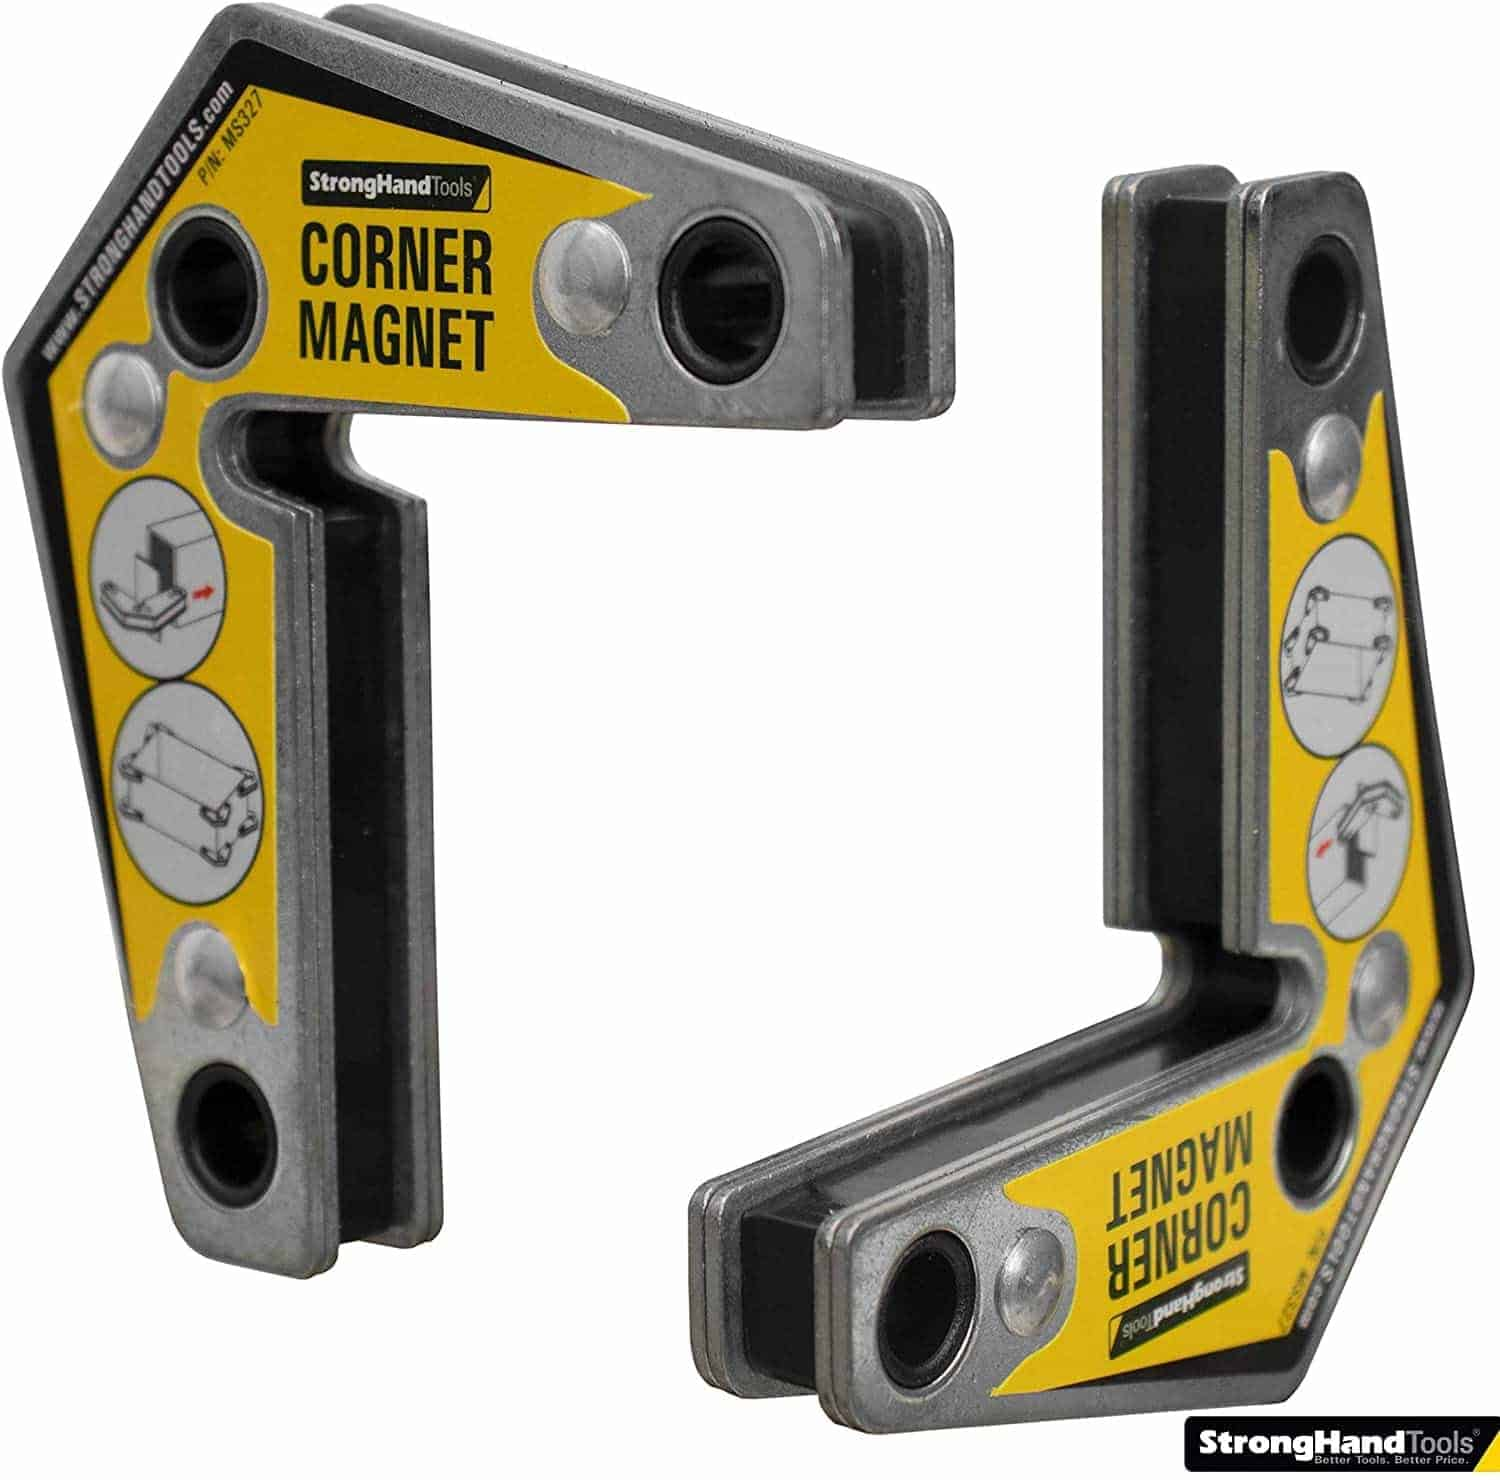 Strong Hand Tools Magnetic Corner Squares